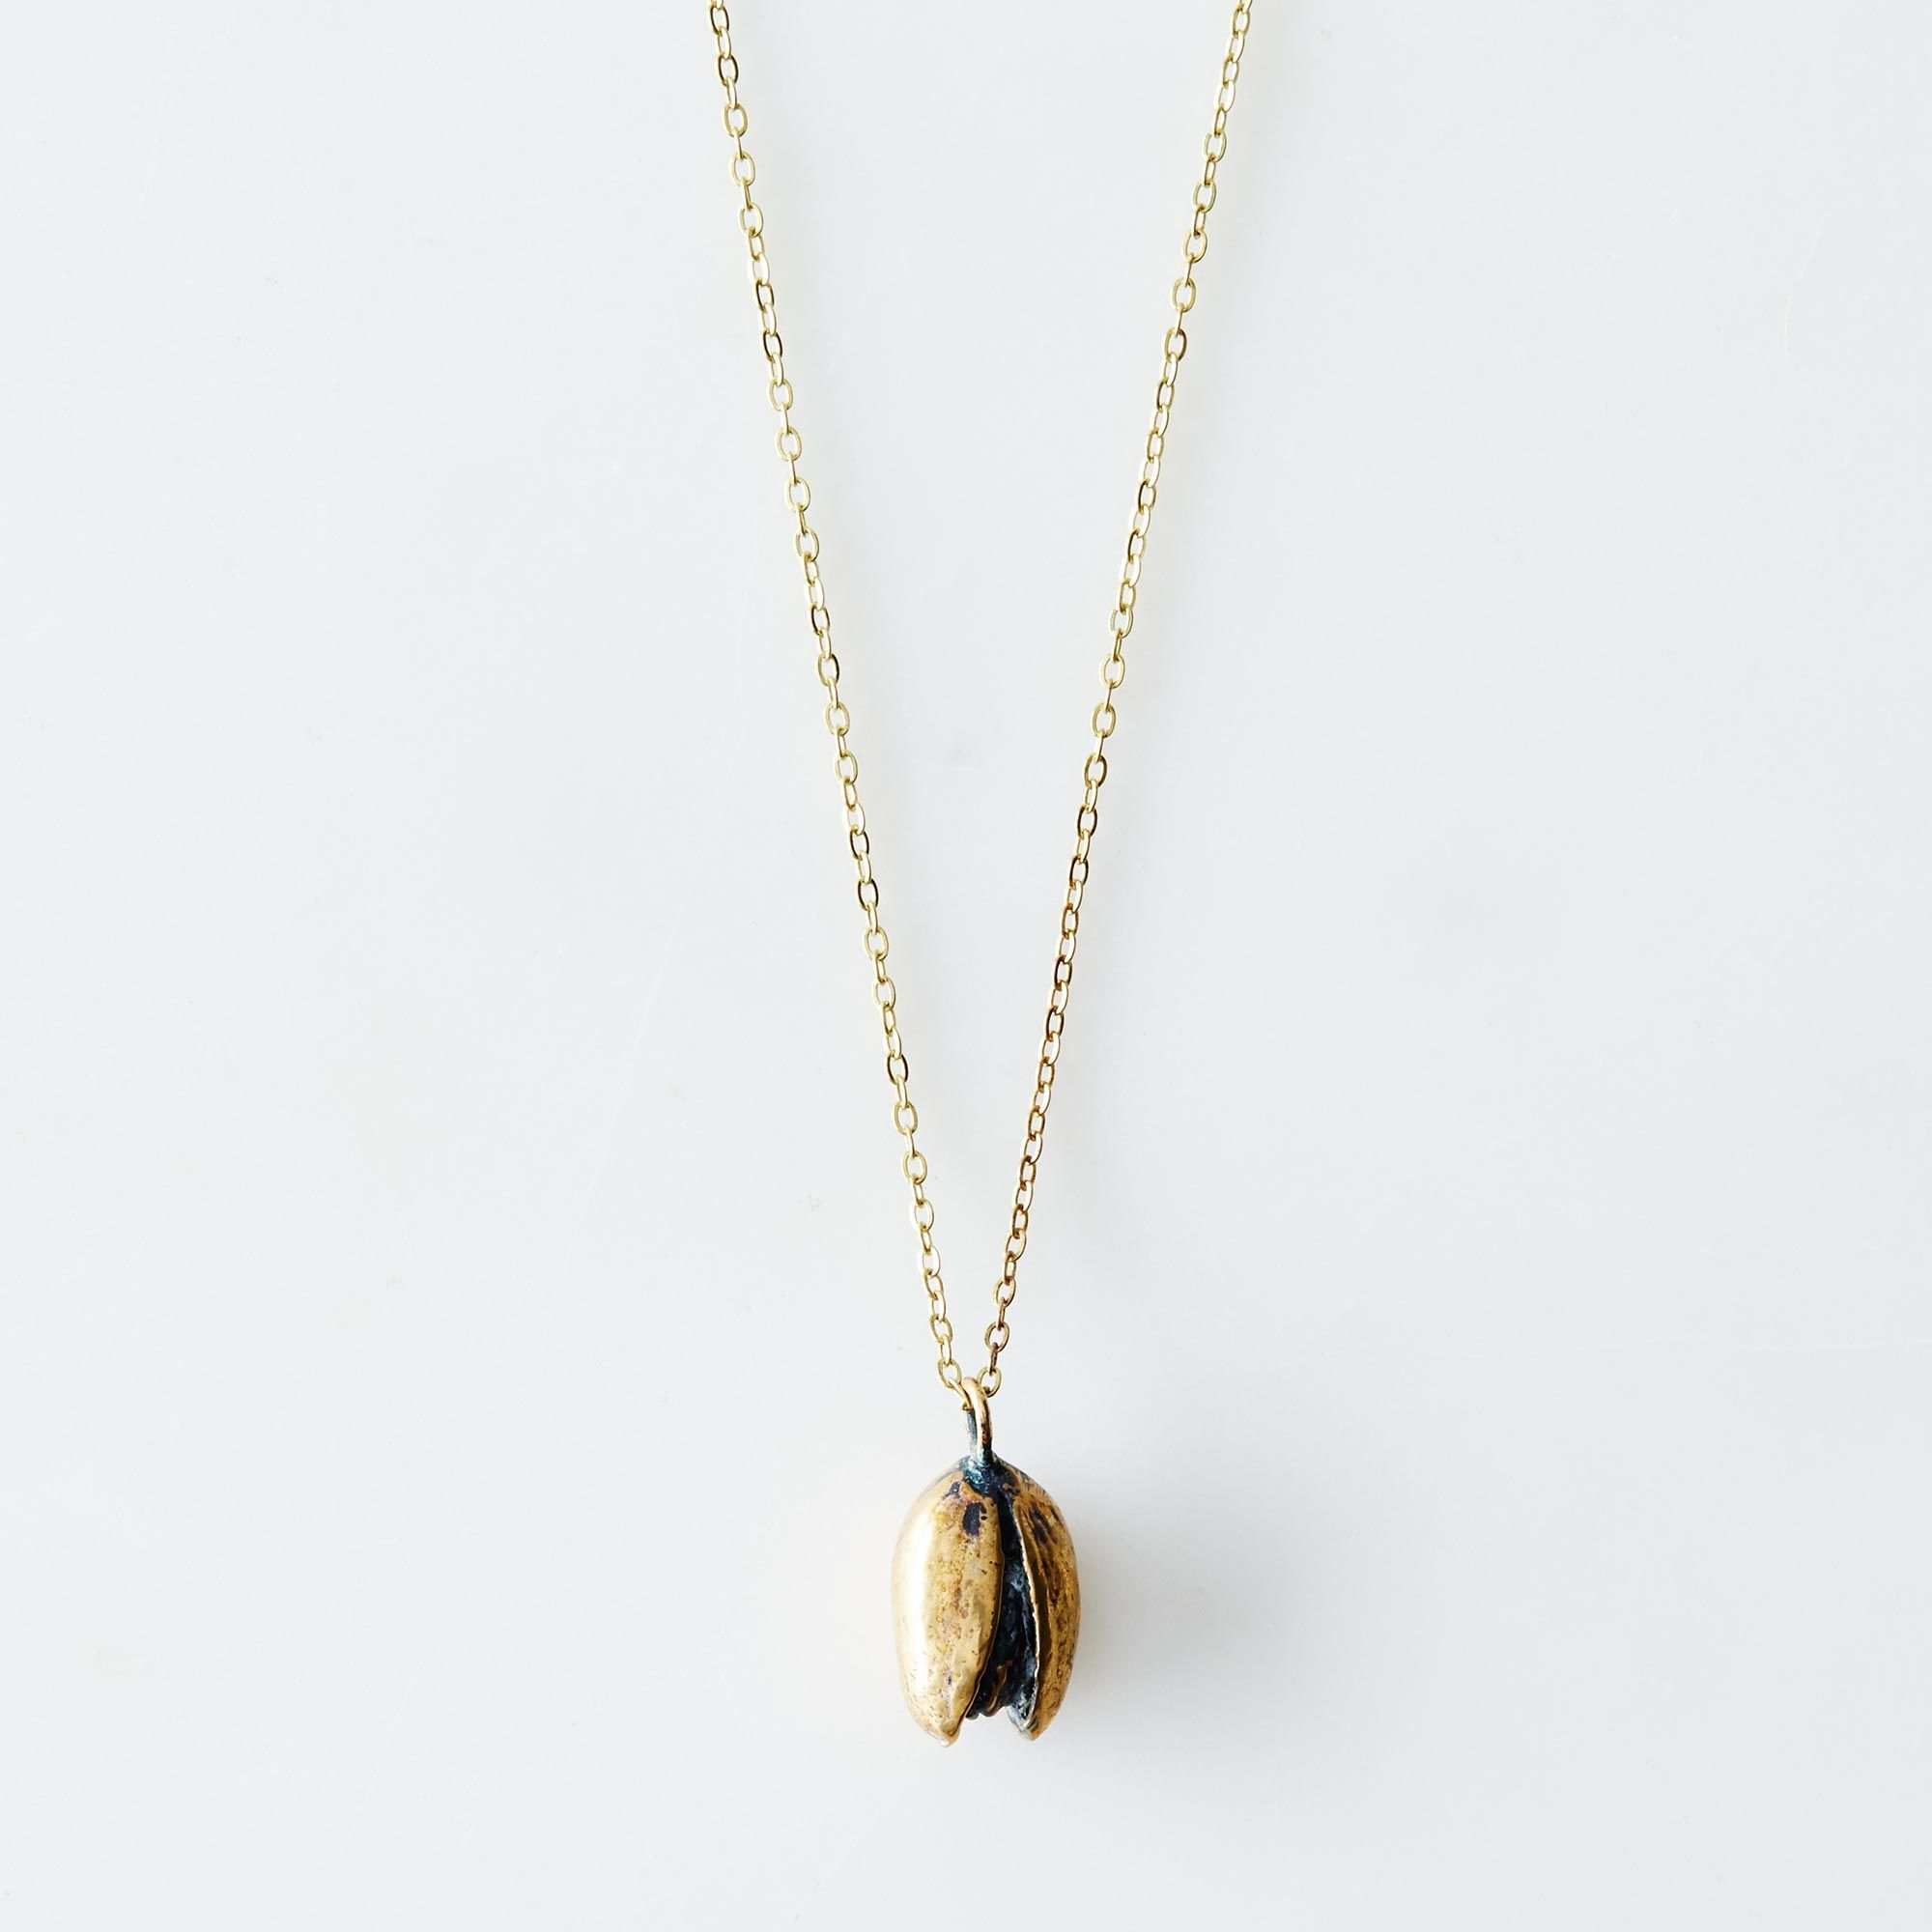 Bb205398-a0f6-11e5-a190-0ef7535729df--2014-0822_gold-teeth-brooklyn_pistachio-necklace_brass-011